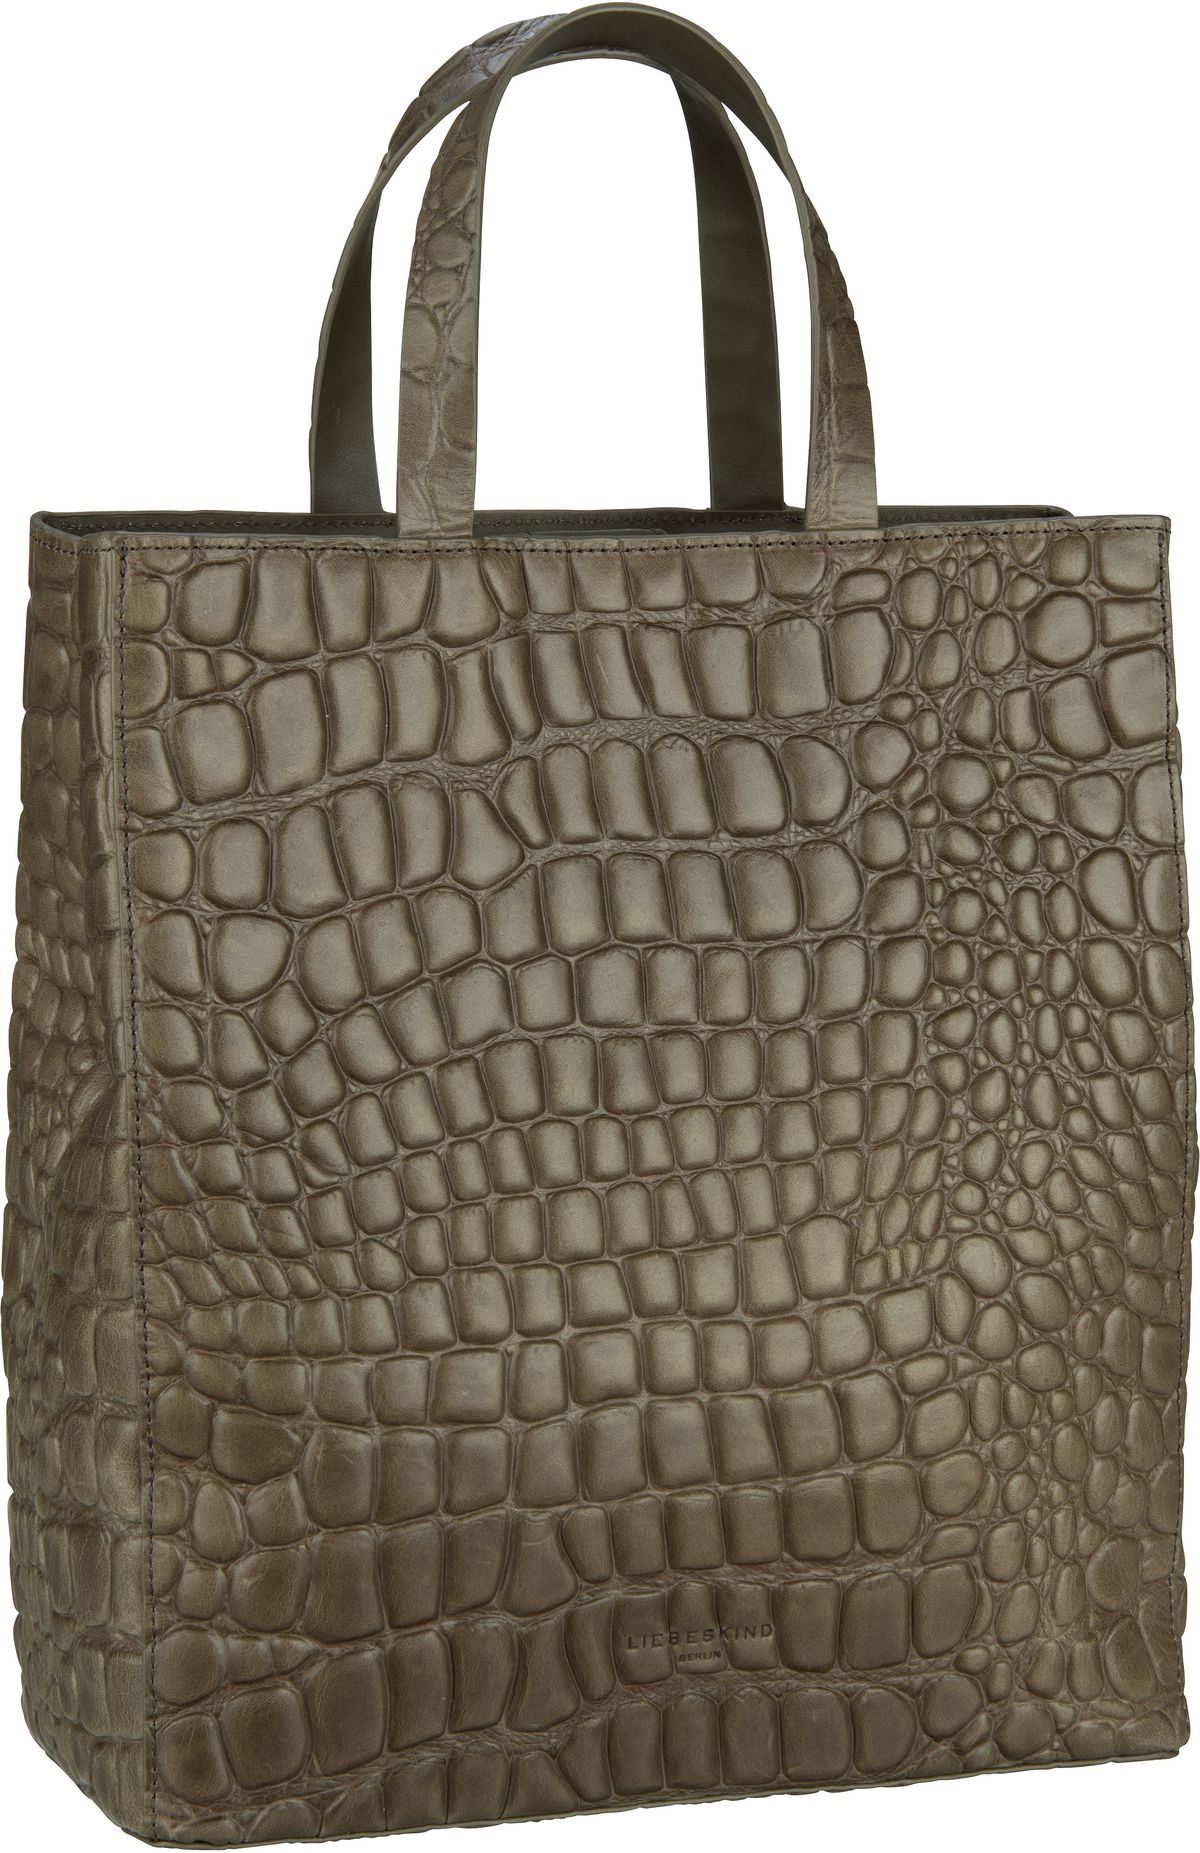 Berlin Shopper Paper Bag Croco Tote M Dark Olive Green